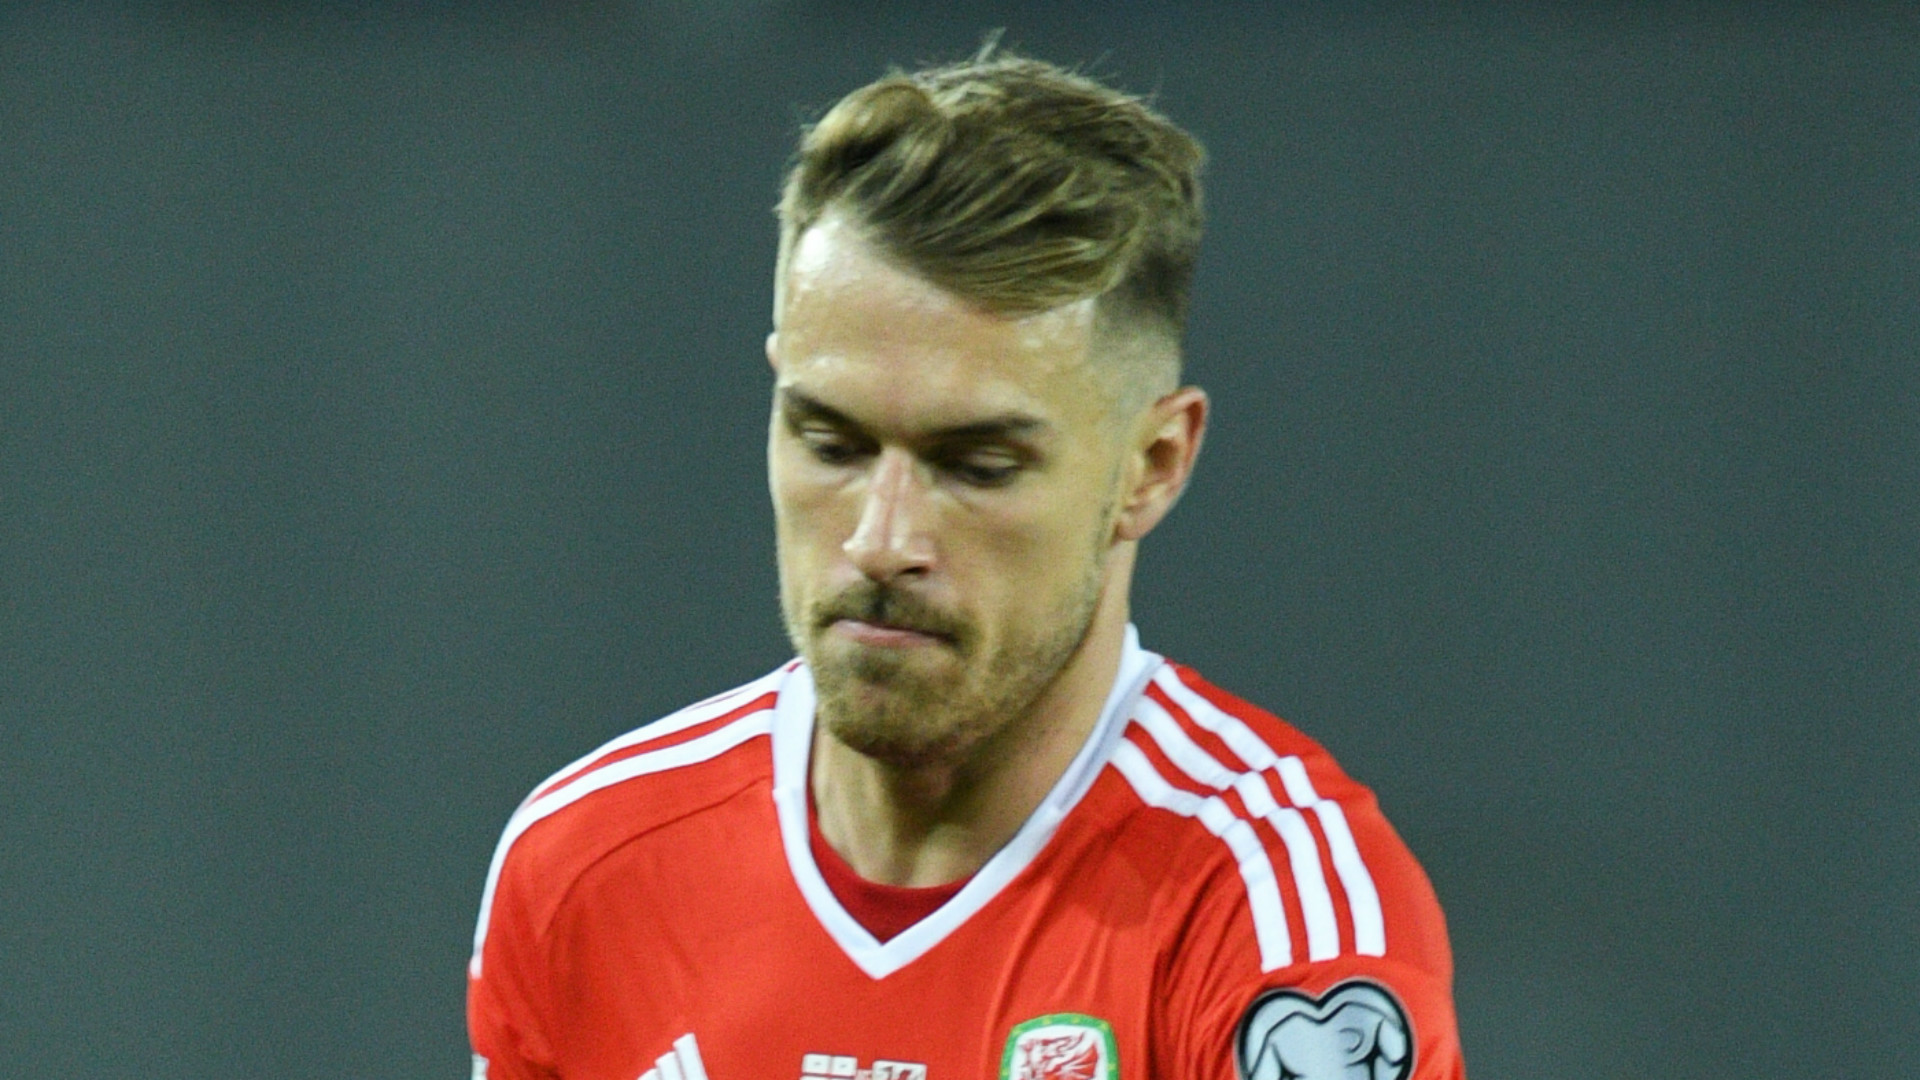 Chris Coleman provides Aaron Ramsey injury update ahead of Tottenham clash